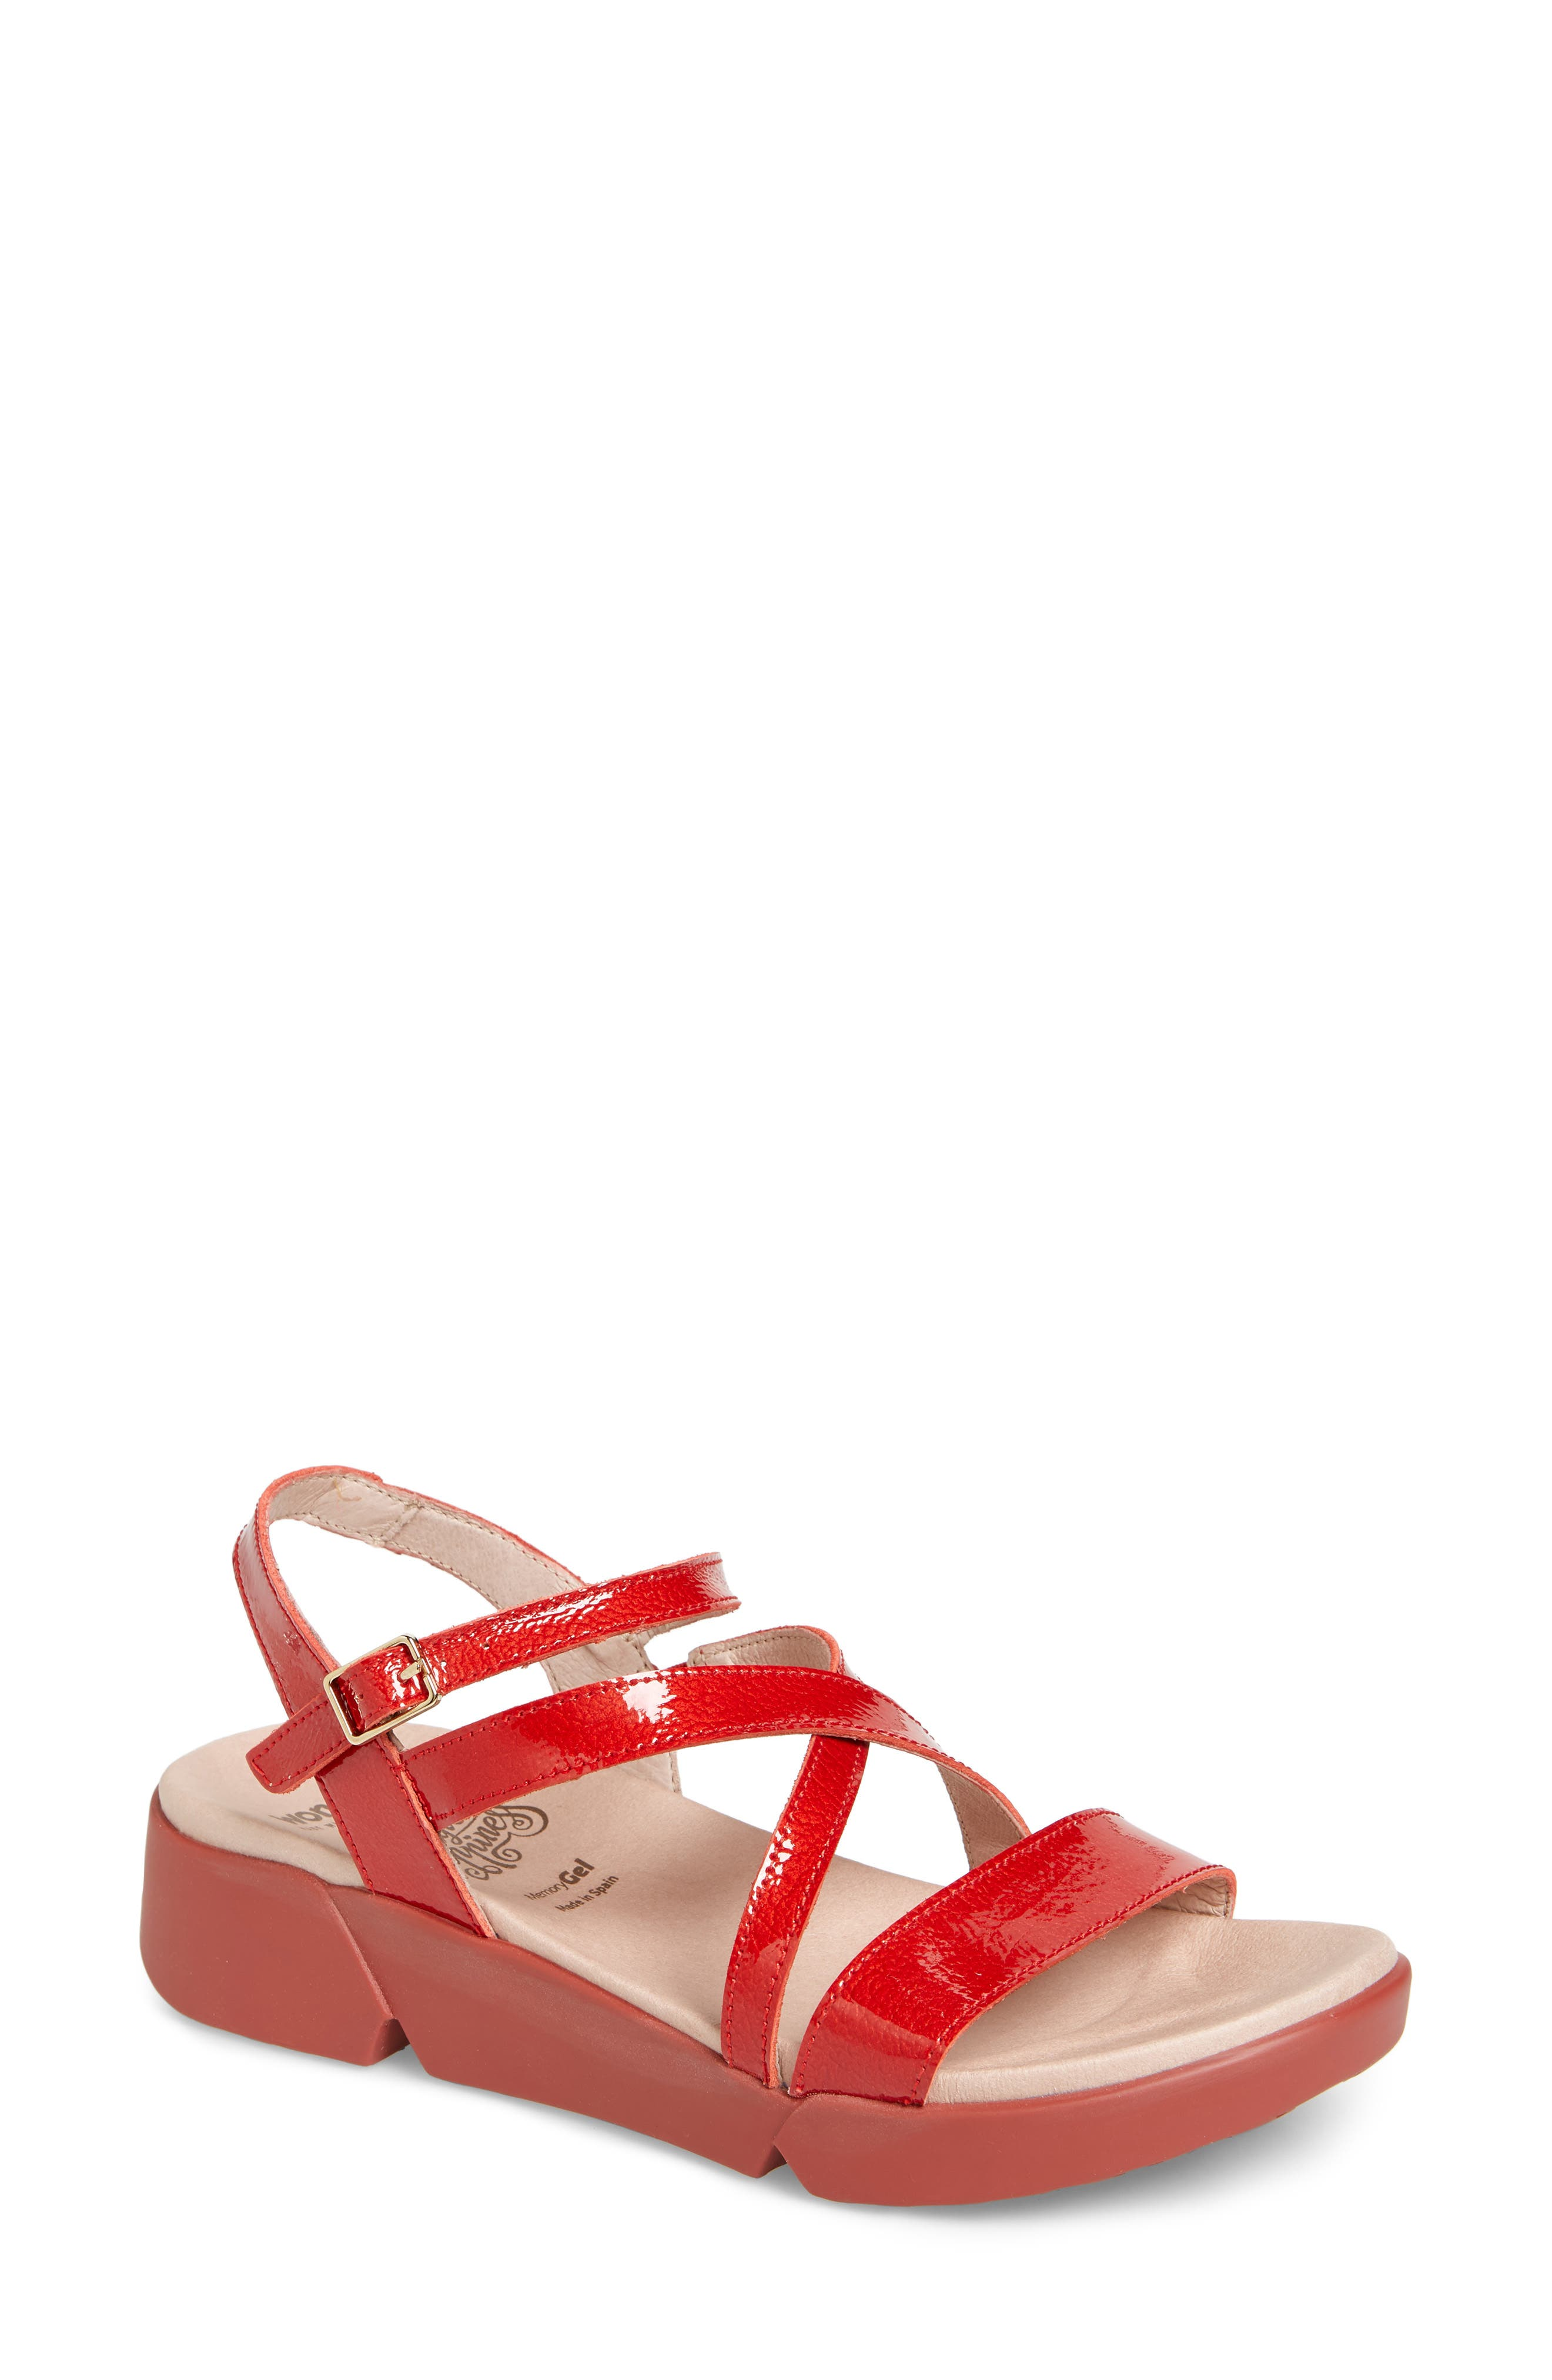 Wonders Wedge Sandal, Red